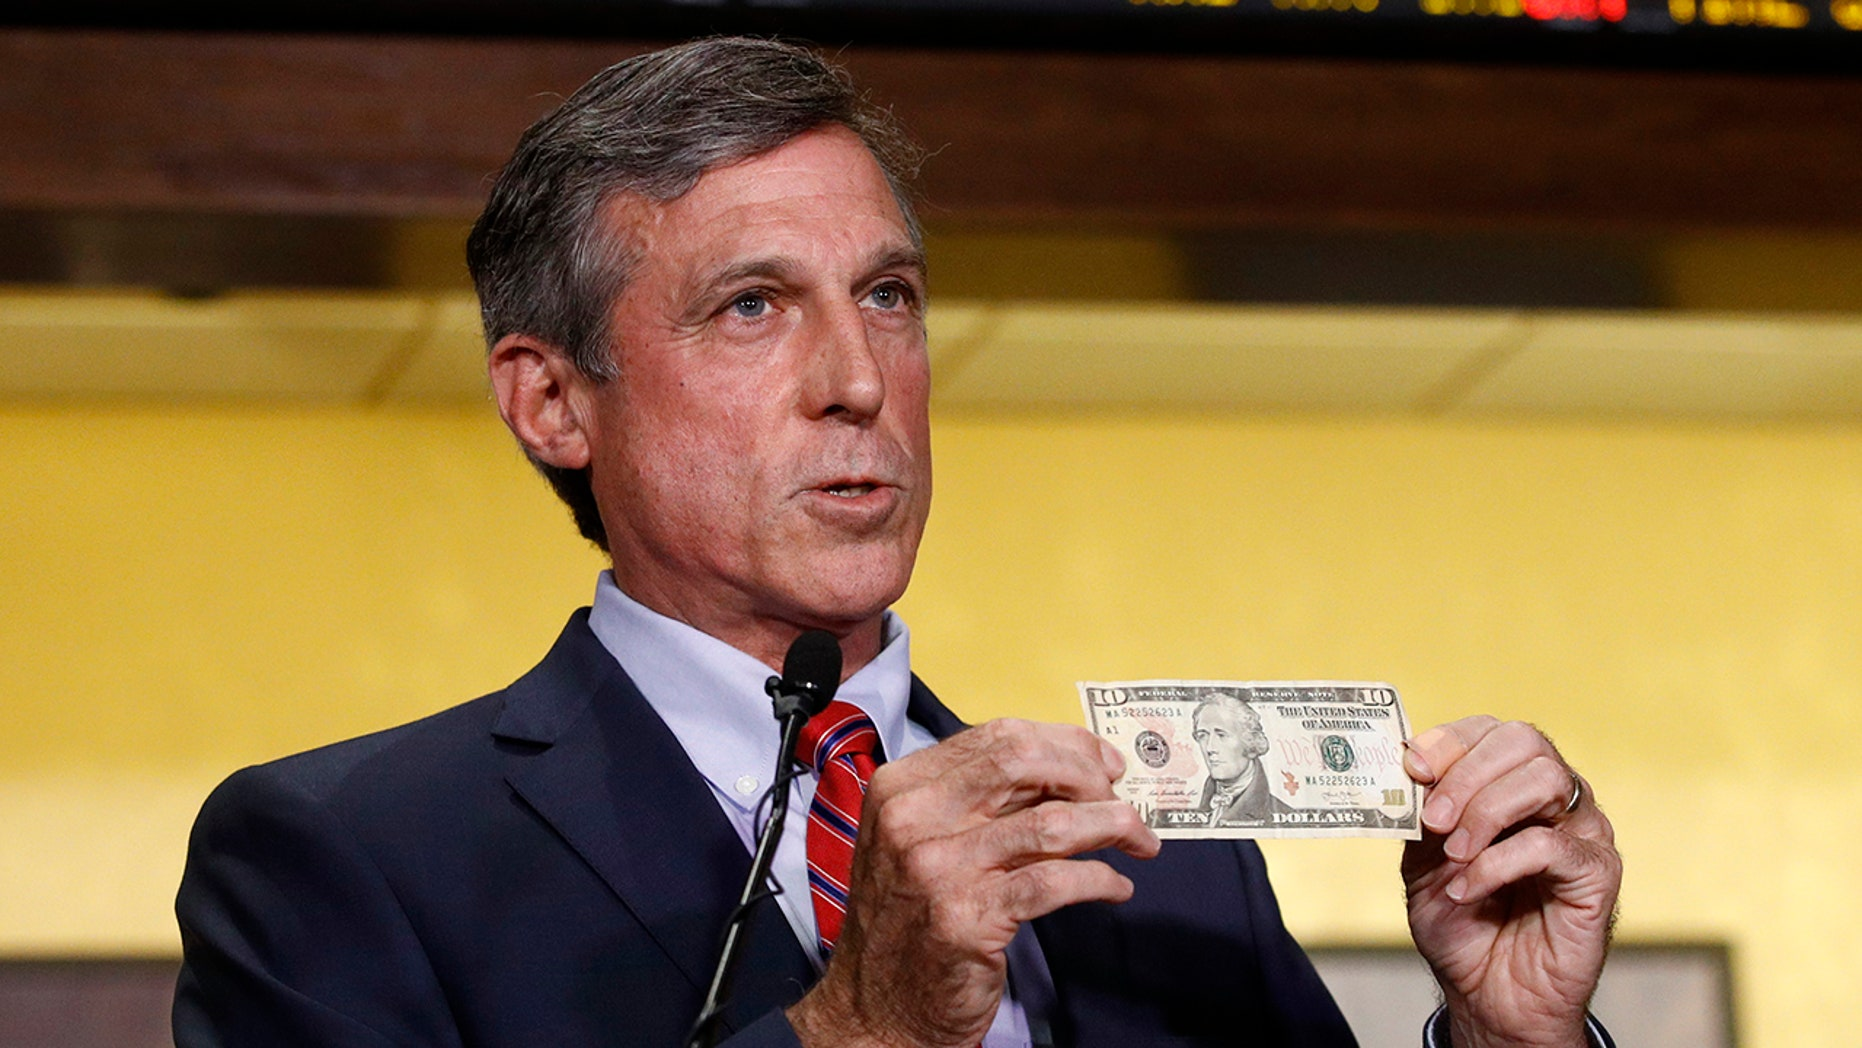 Delaware Gov. John Carney displays a ten dollar bill before using it to place a bet on a baseball game between the Chicago Cubs and the Philadelphia Phillies.